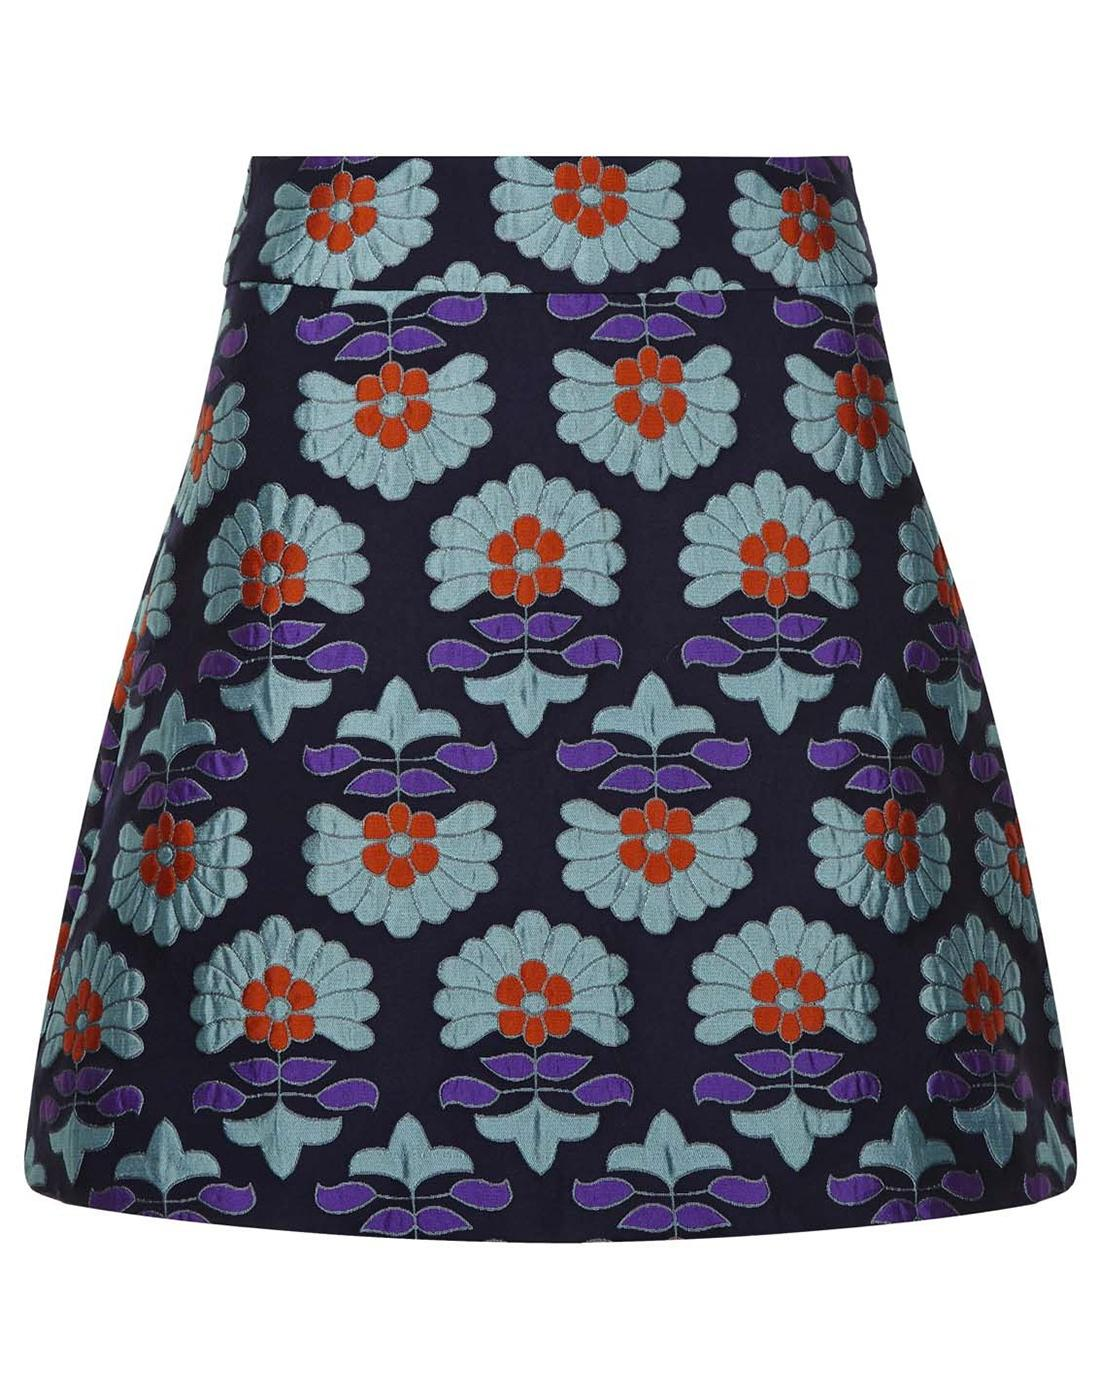 TRAFFIC PEOPLE Flowers of Fortune Mod Mini Skirt